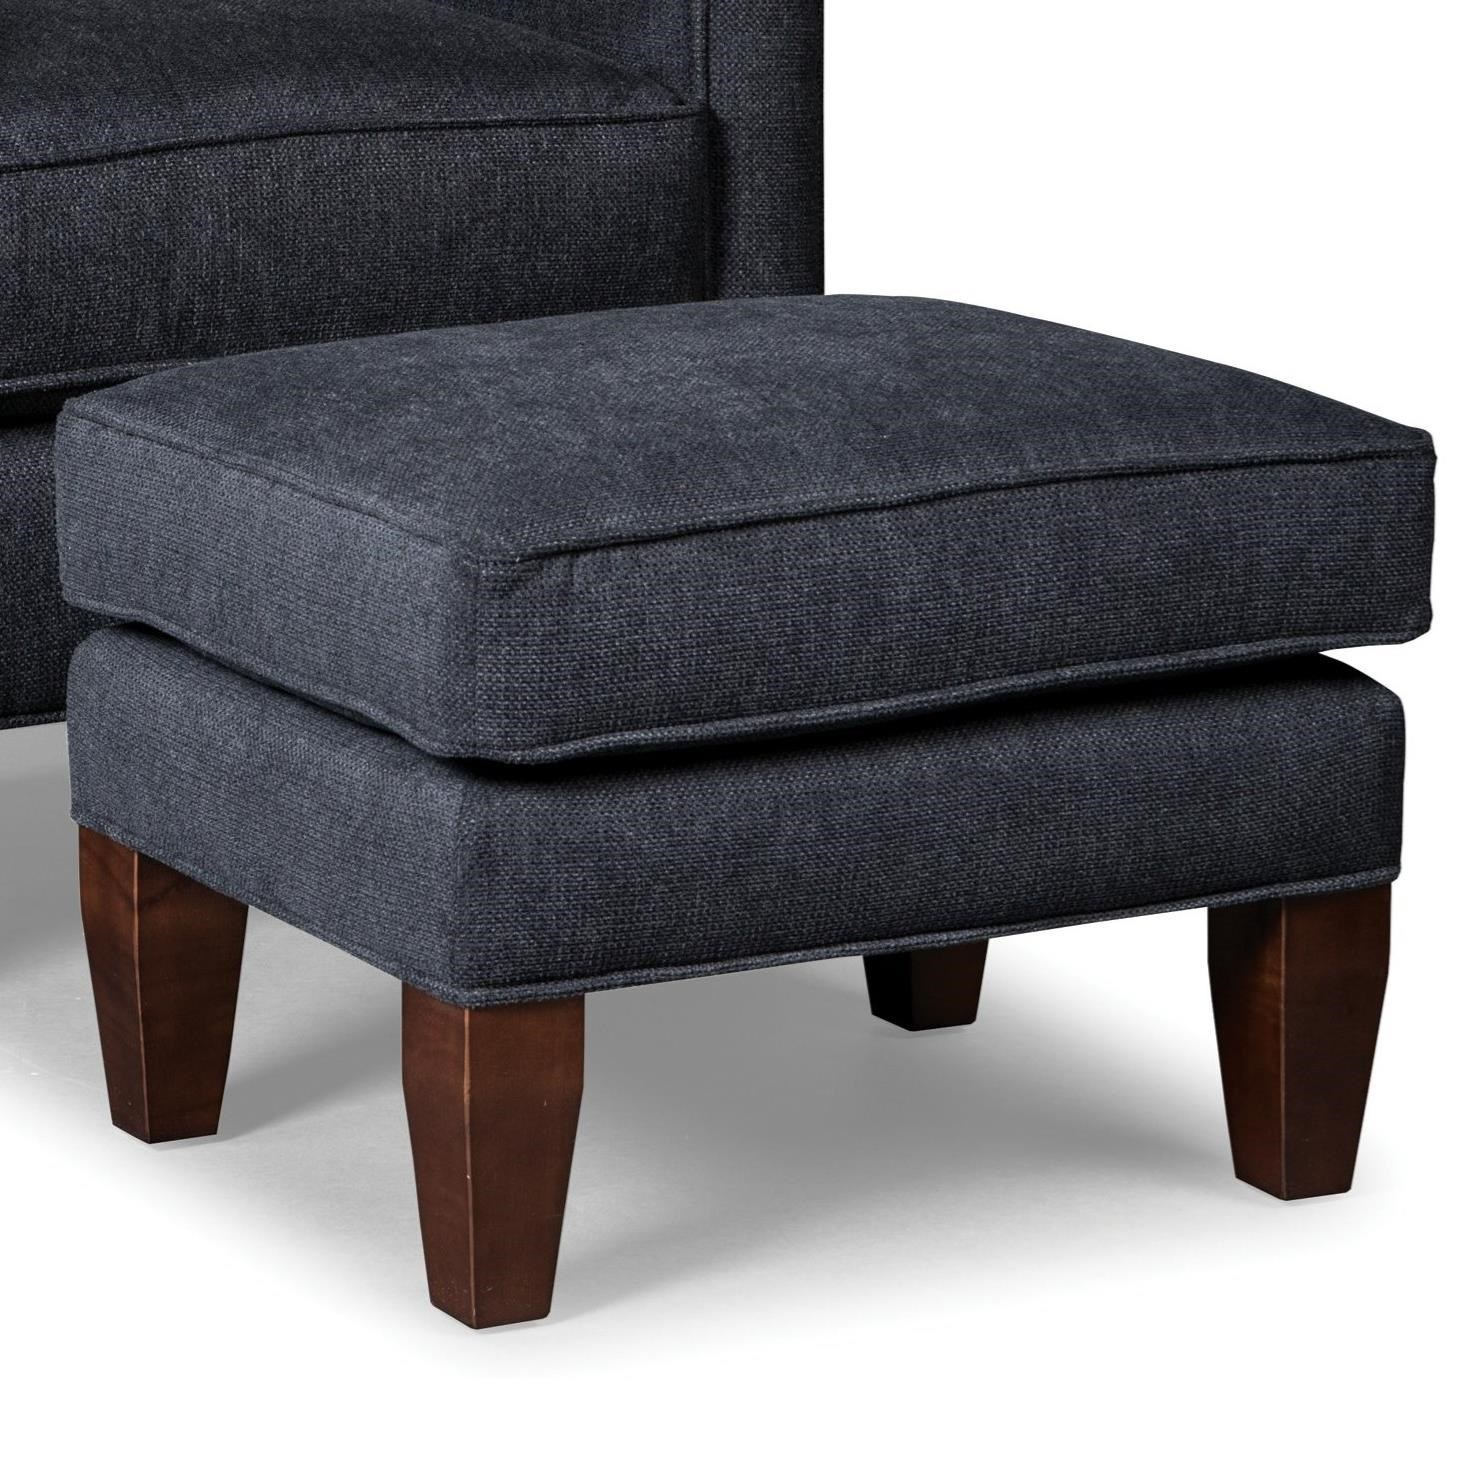 accent chairs with ottomans chair design structure craftmaster ottoman tall wood legs miskelly